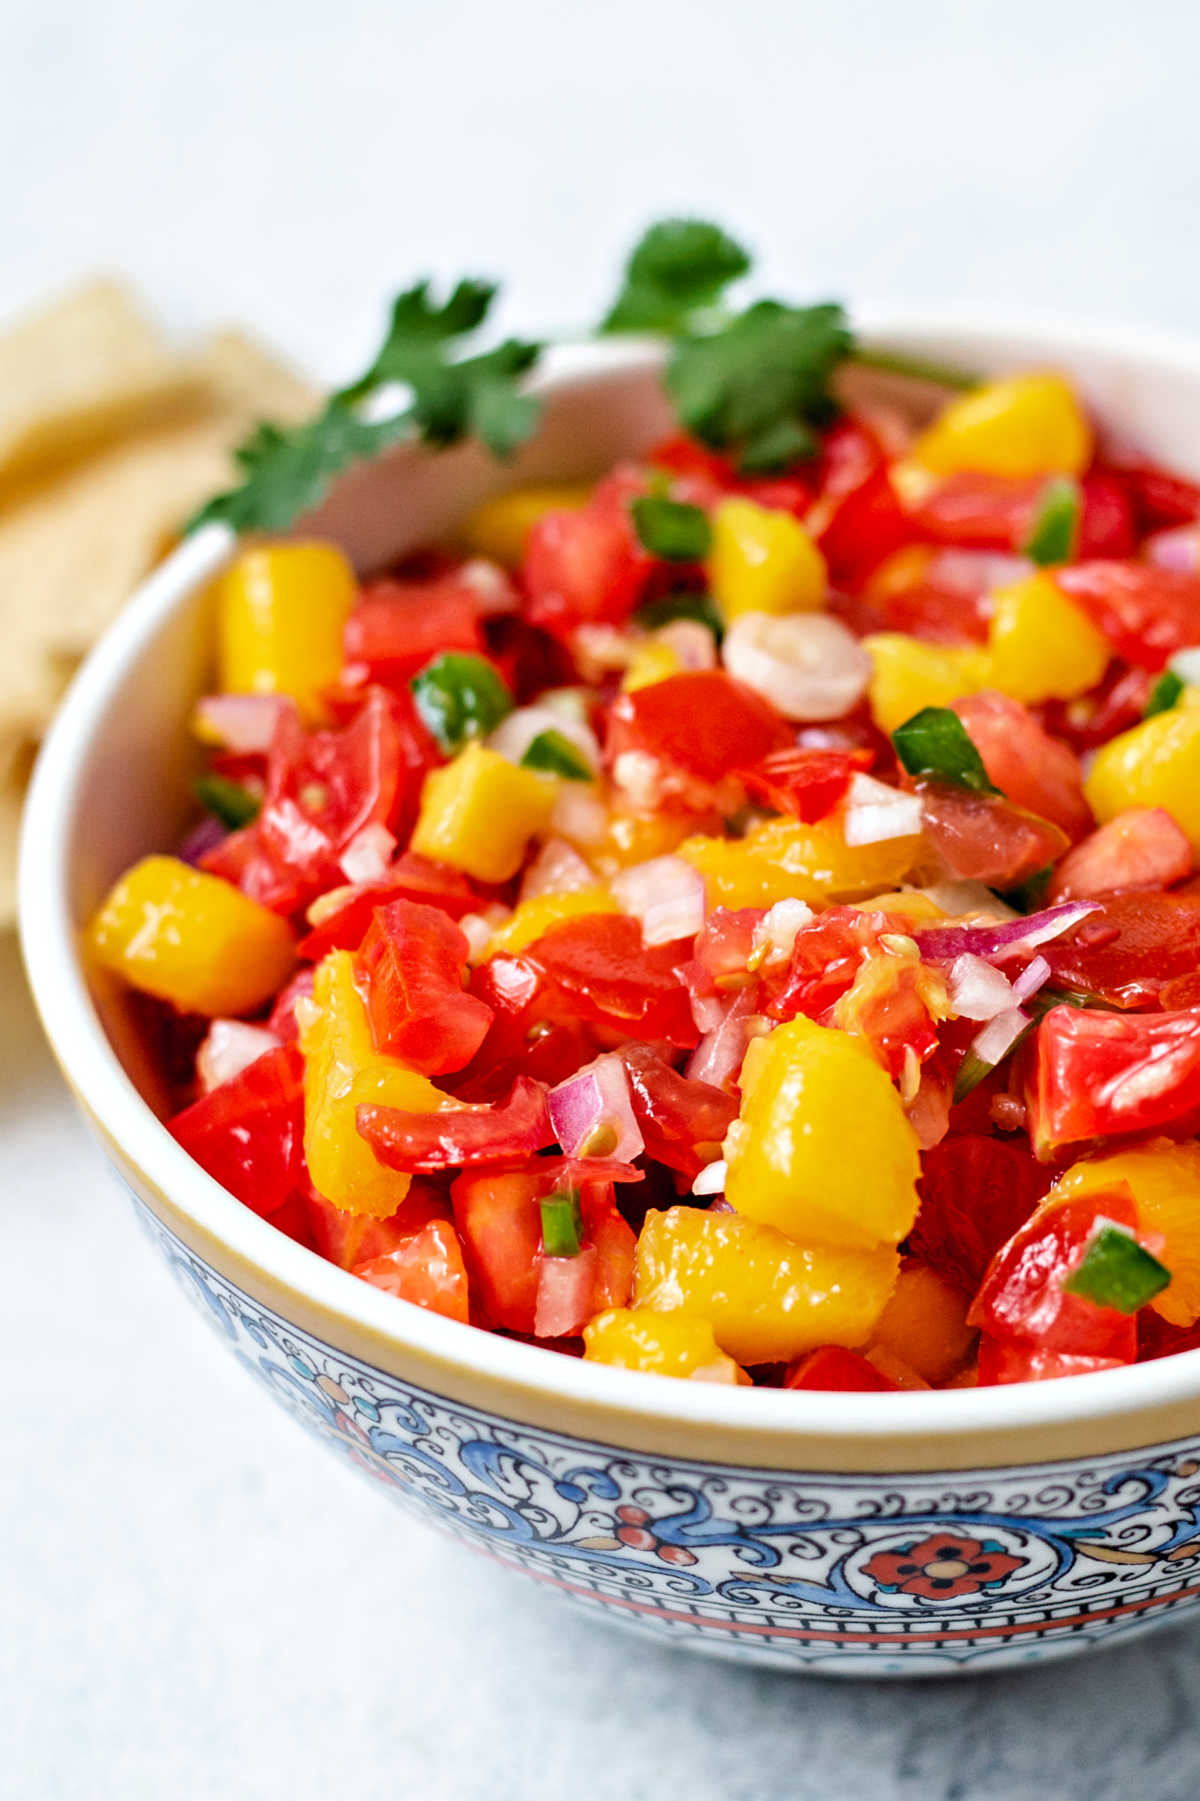 close up image of mango tomato salsa in a bowl on a table.